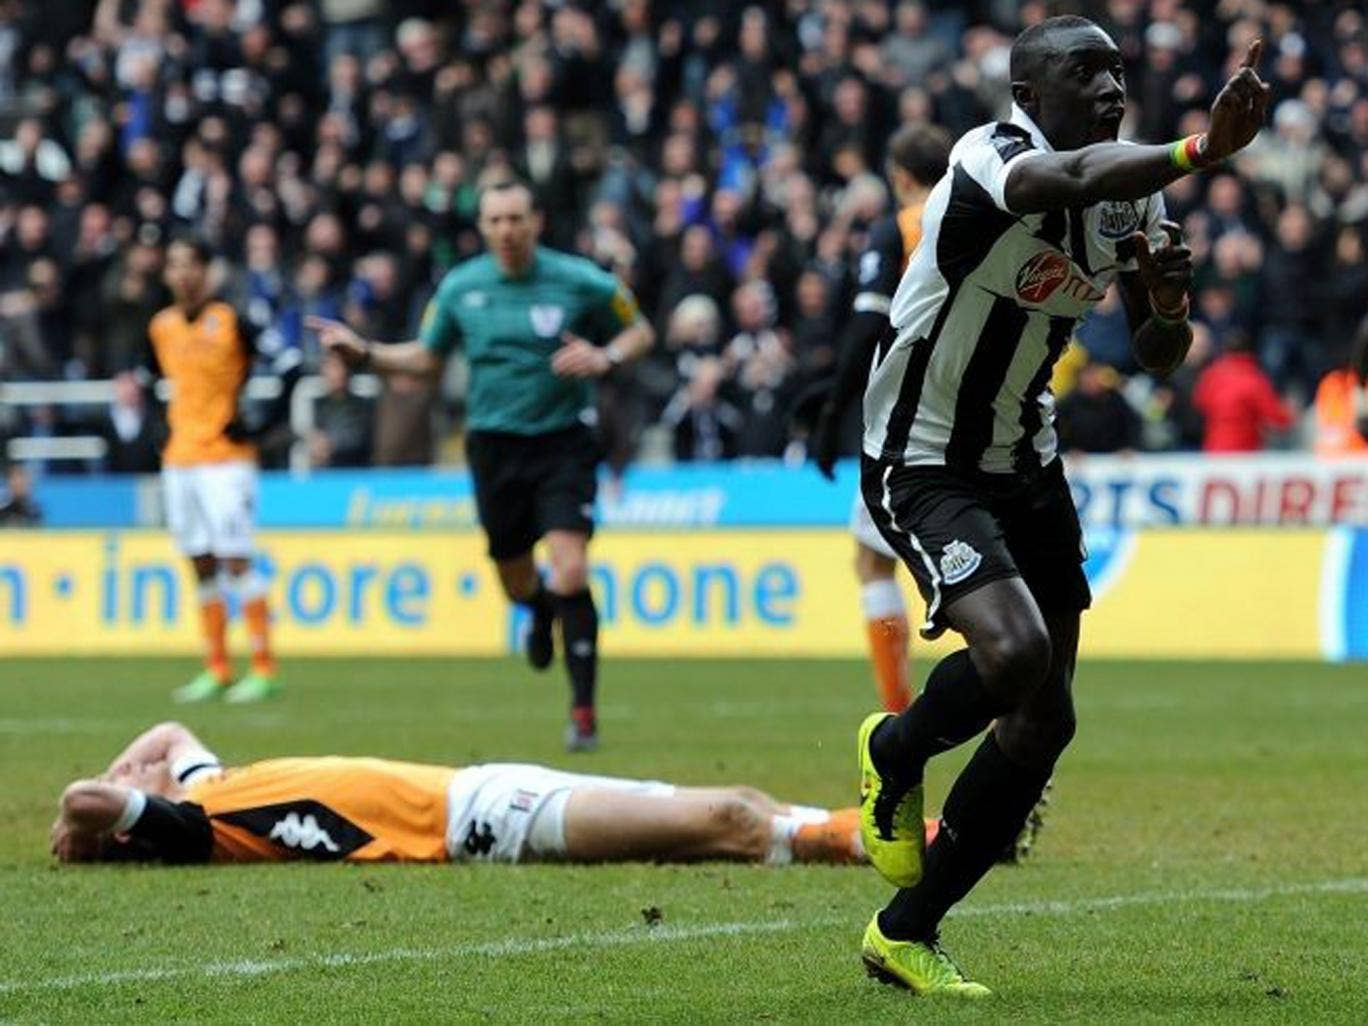 Papiss Cisse eased Newcastle's relegation fears with an injury-time winner against Fulham